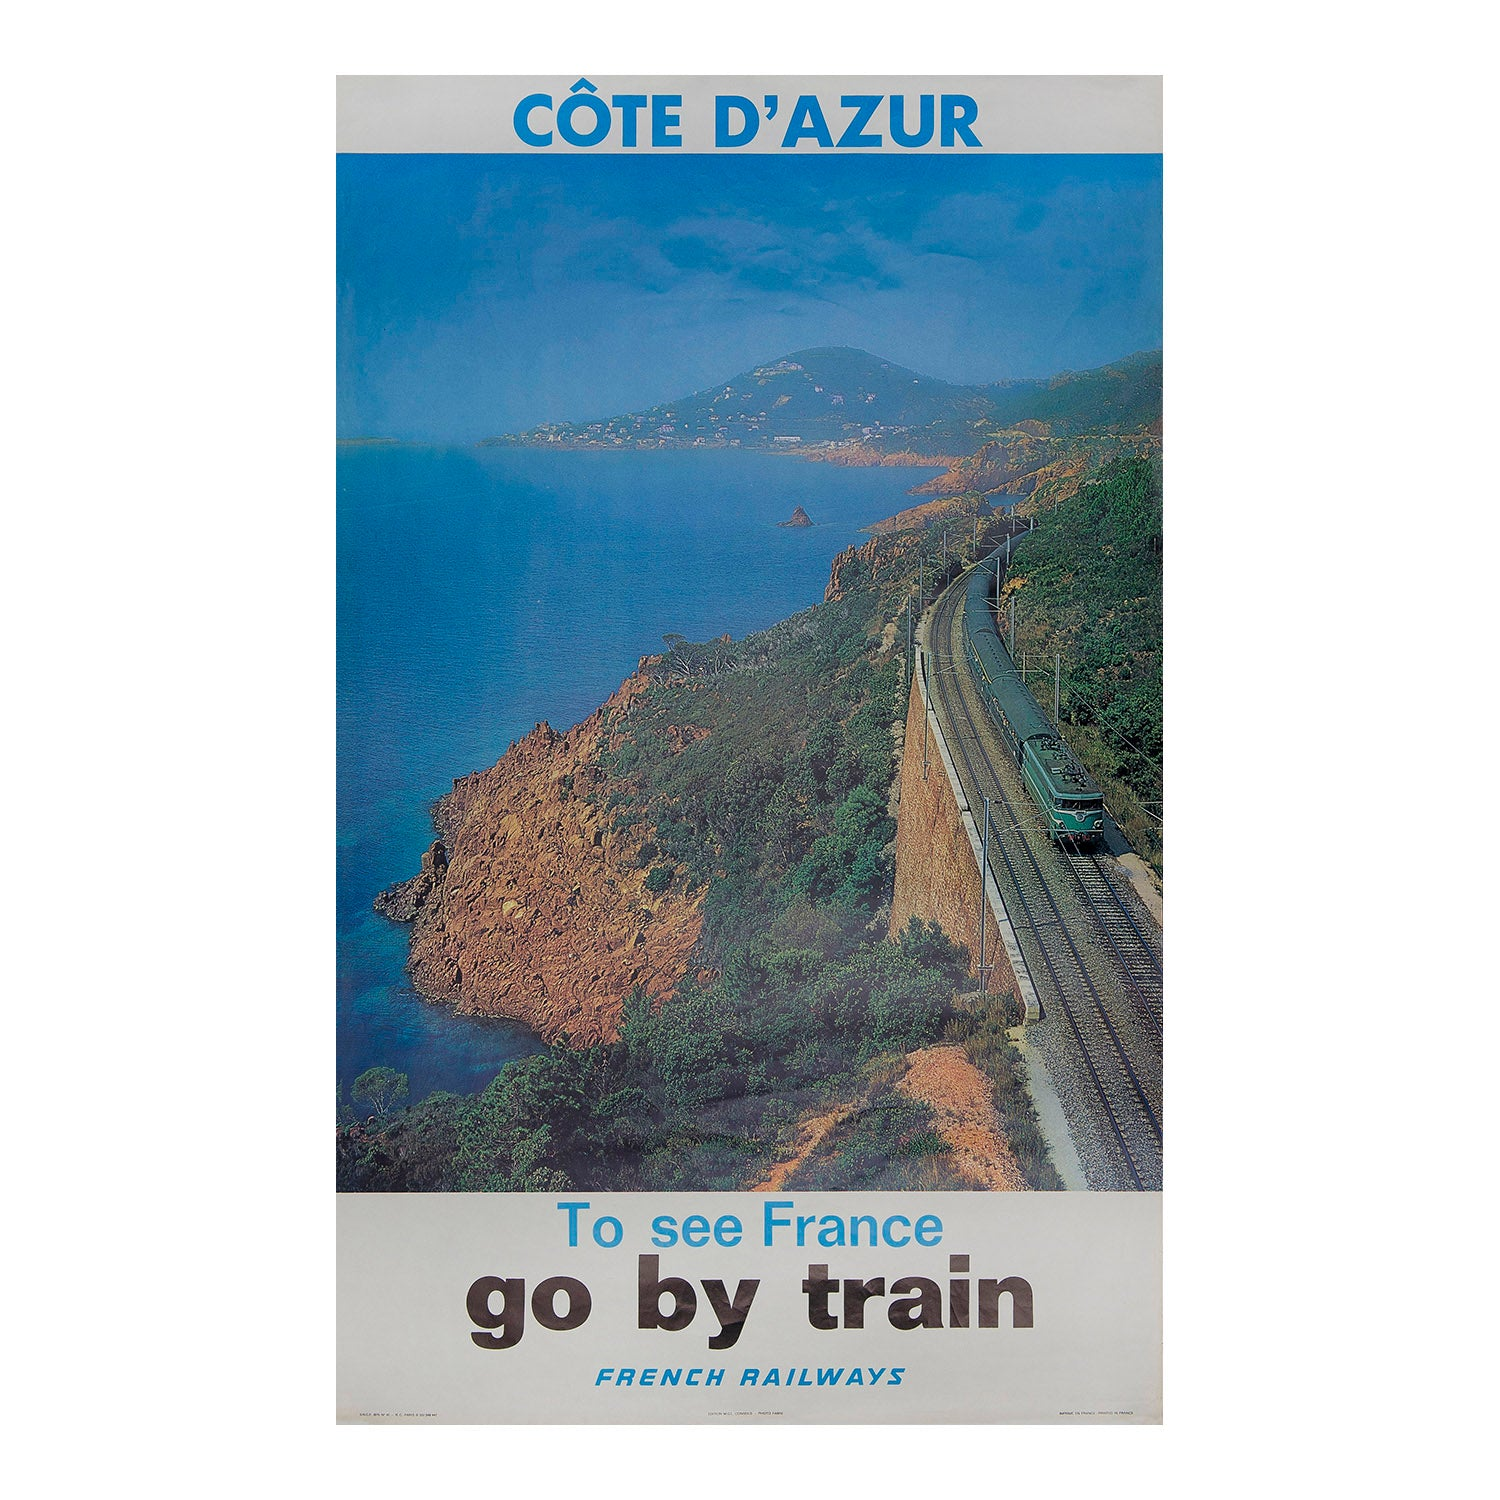 Côte d' Azur. To see France go by train. French Railways